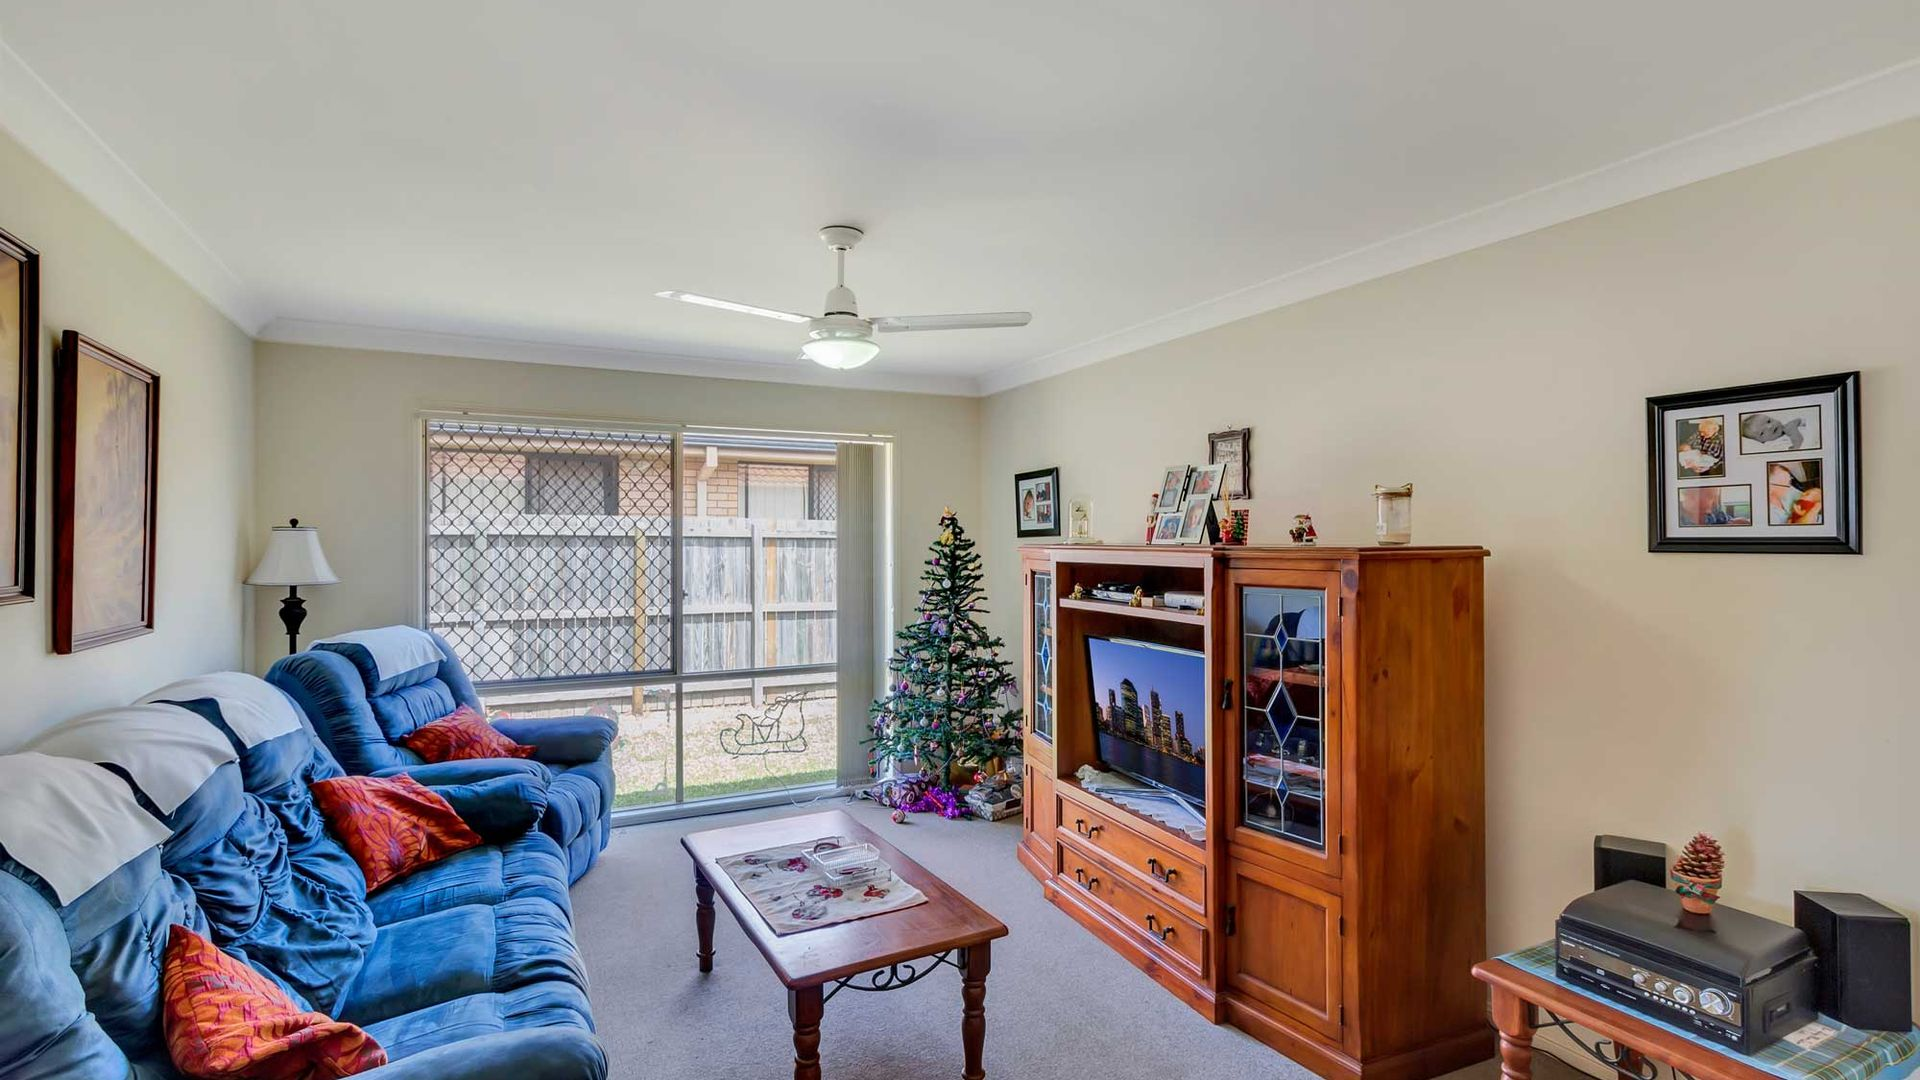 174 Macquarie Way, Drewvale QLD 4116, Image 1